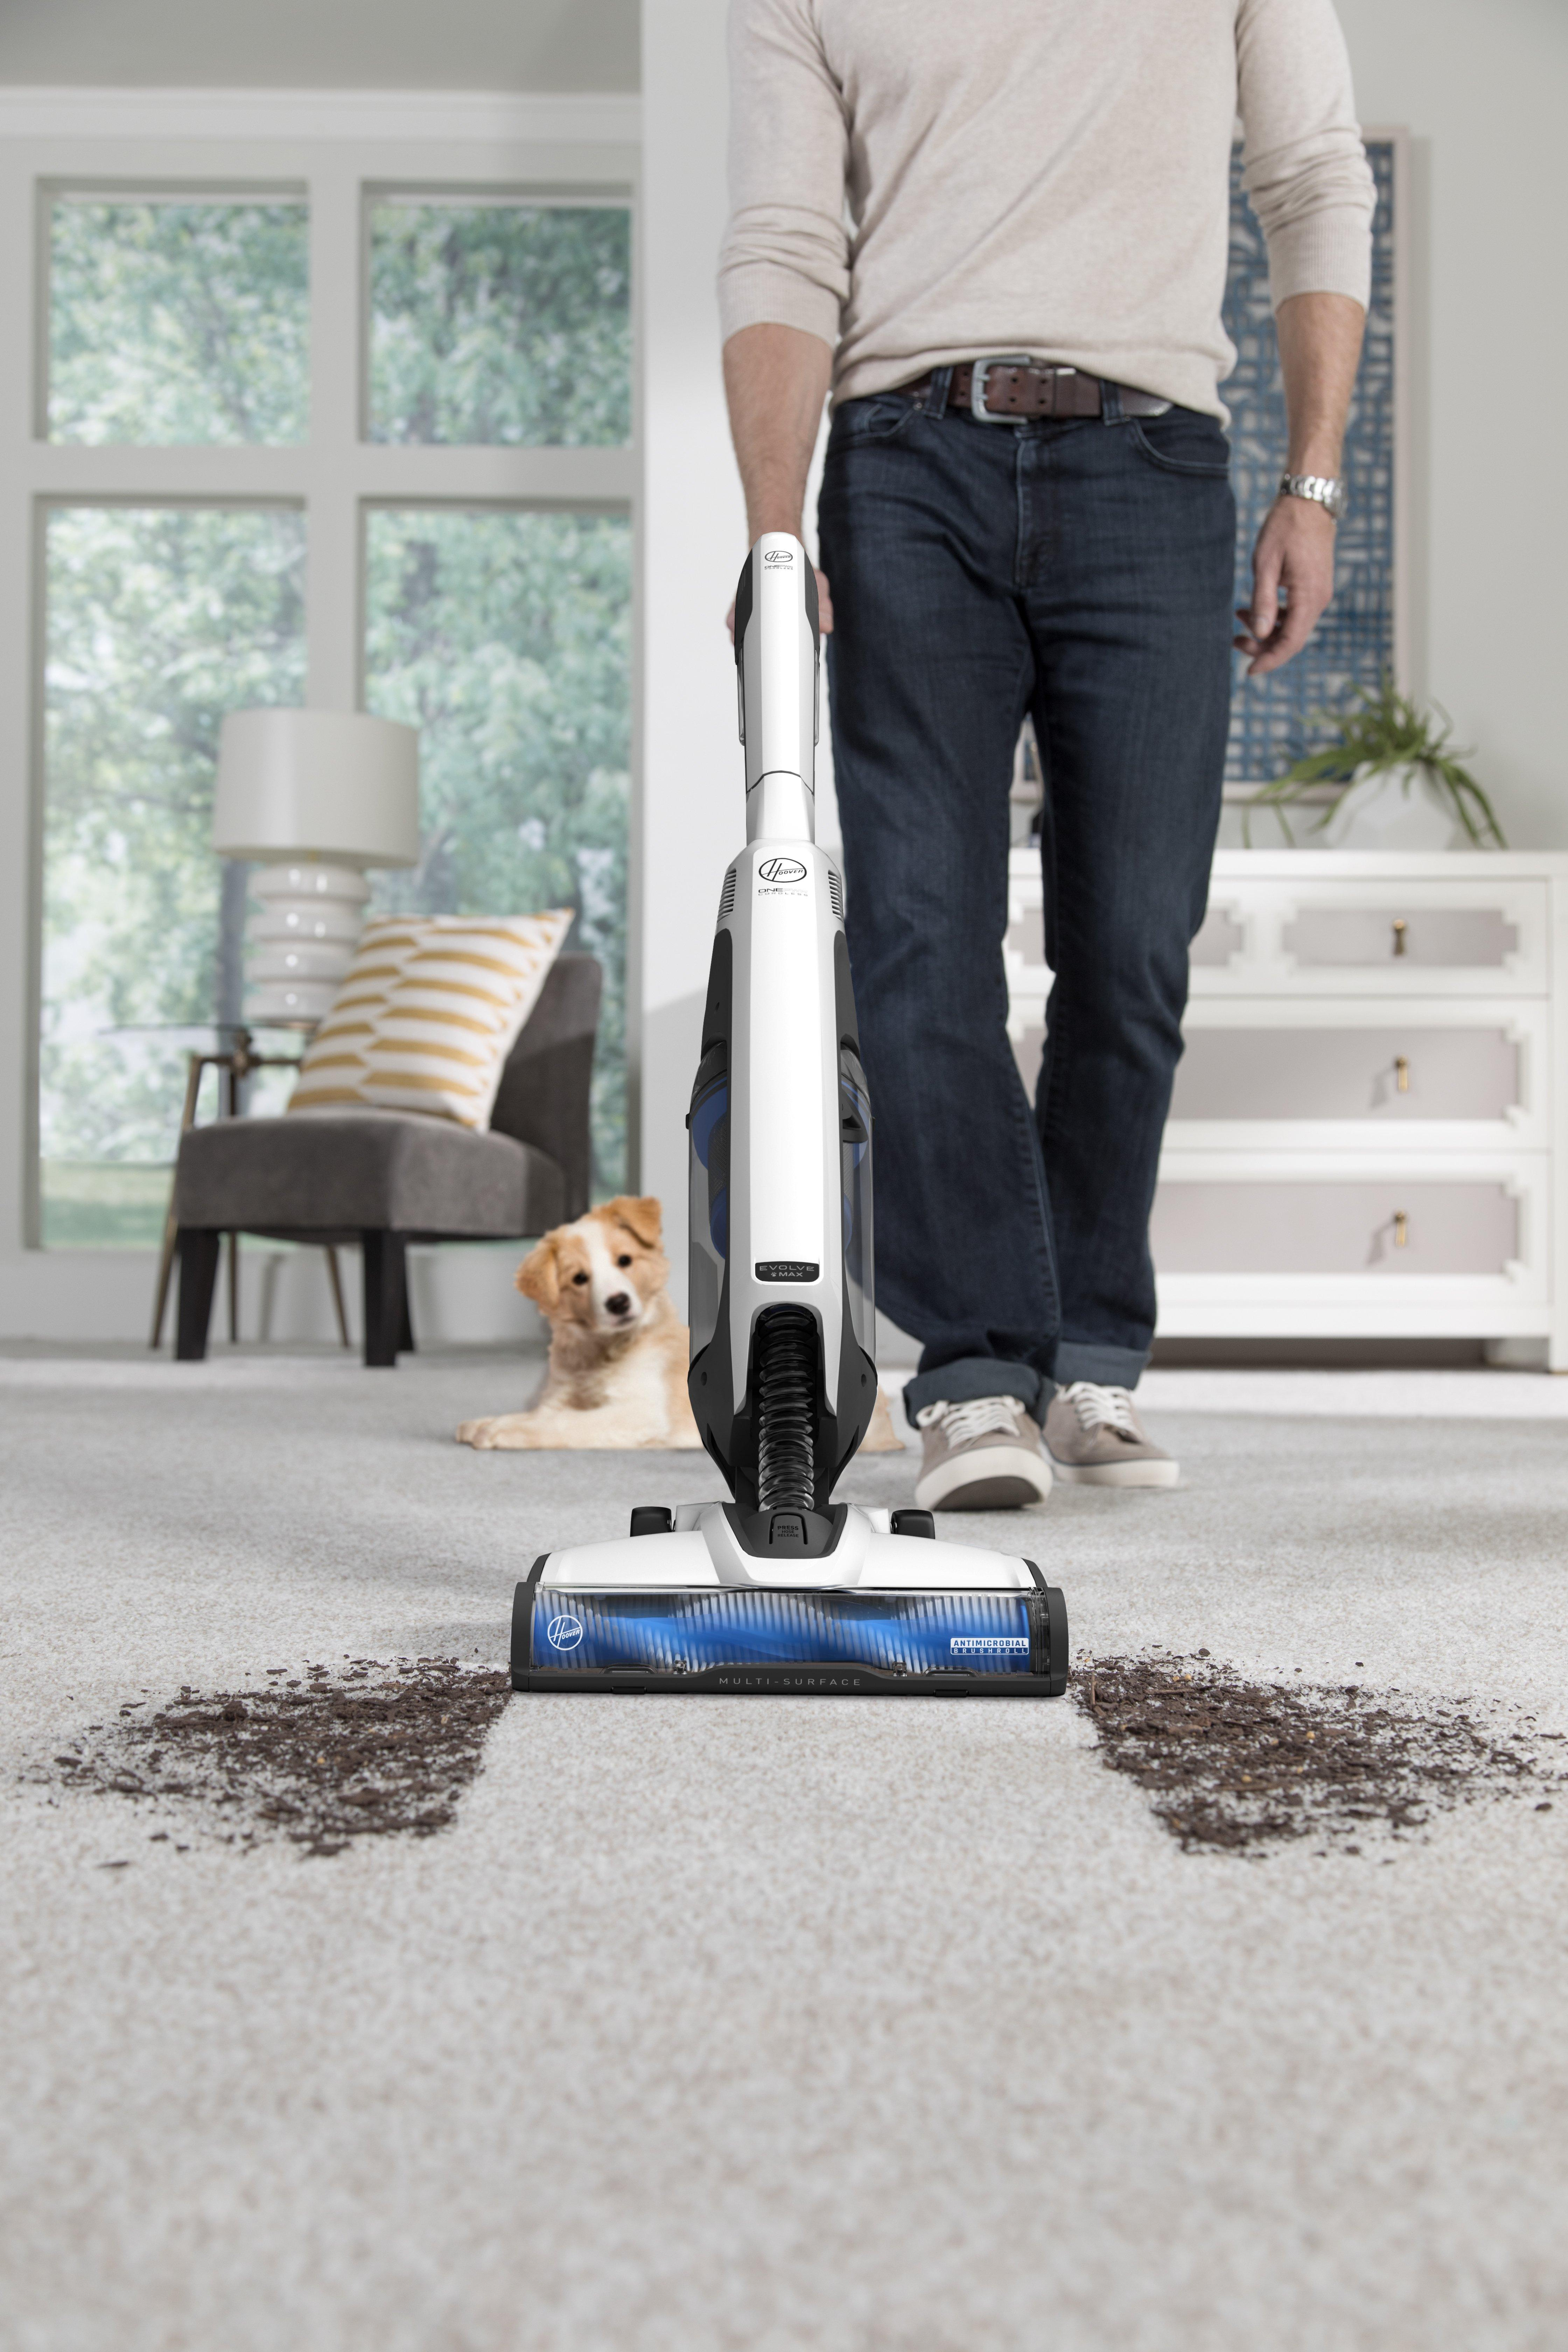 Hoover ONEPWR Evolve Pet Max Cordless Upright Vacuum3